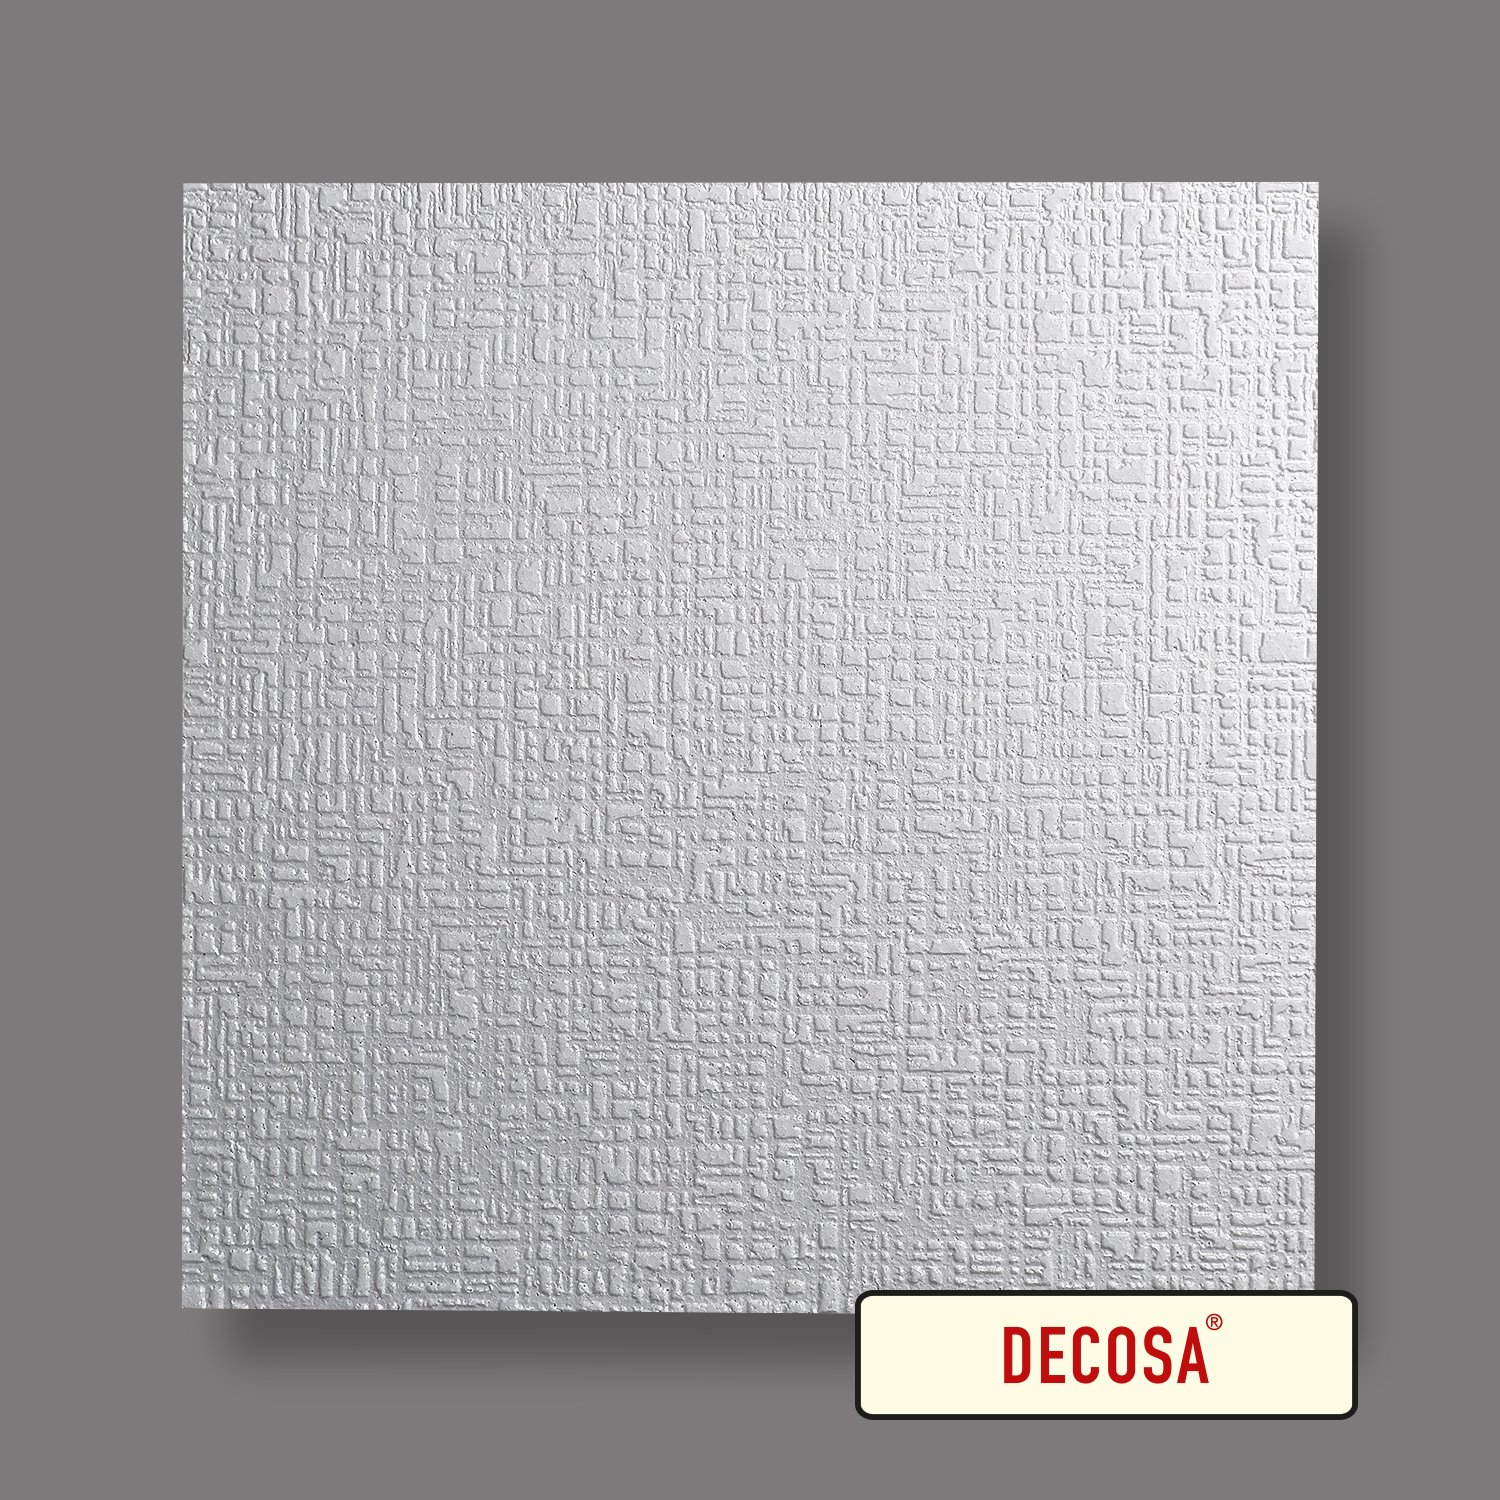 blanc 50 x 50 cm Decosa Dalle de plafond Bukarest PRIX SPECIAL GROS CONDITIONNEMENT = 28m2